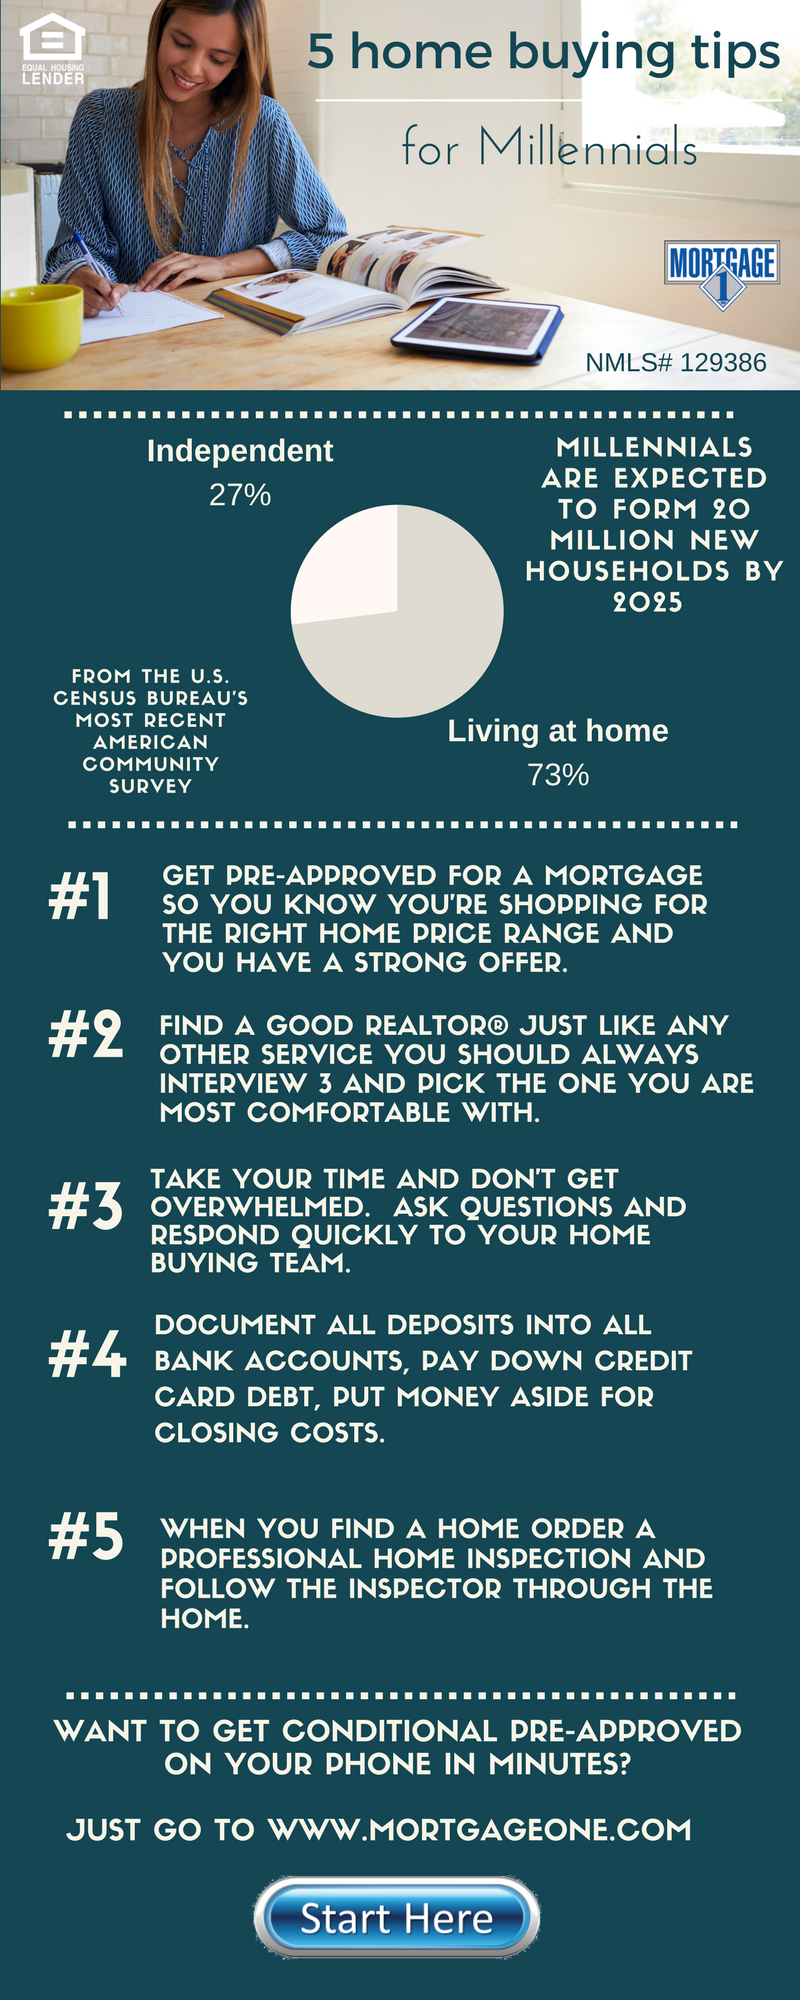 5 Home Buying Tips For Millennials Mortgage 1 Inc